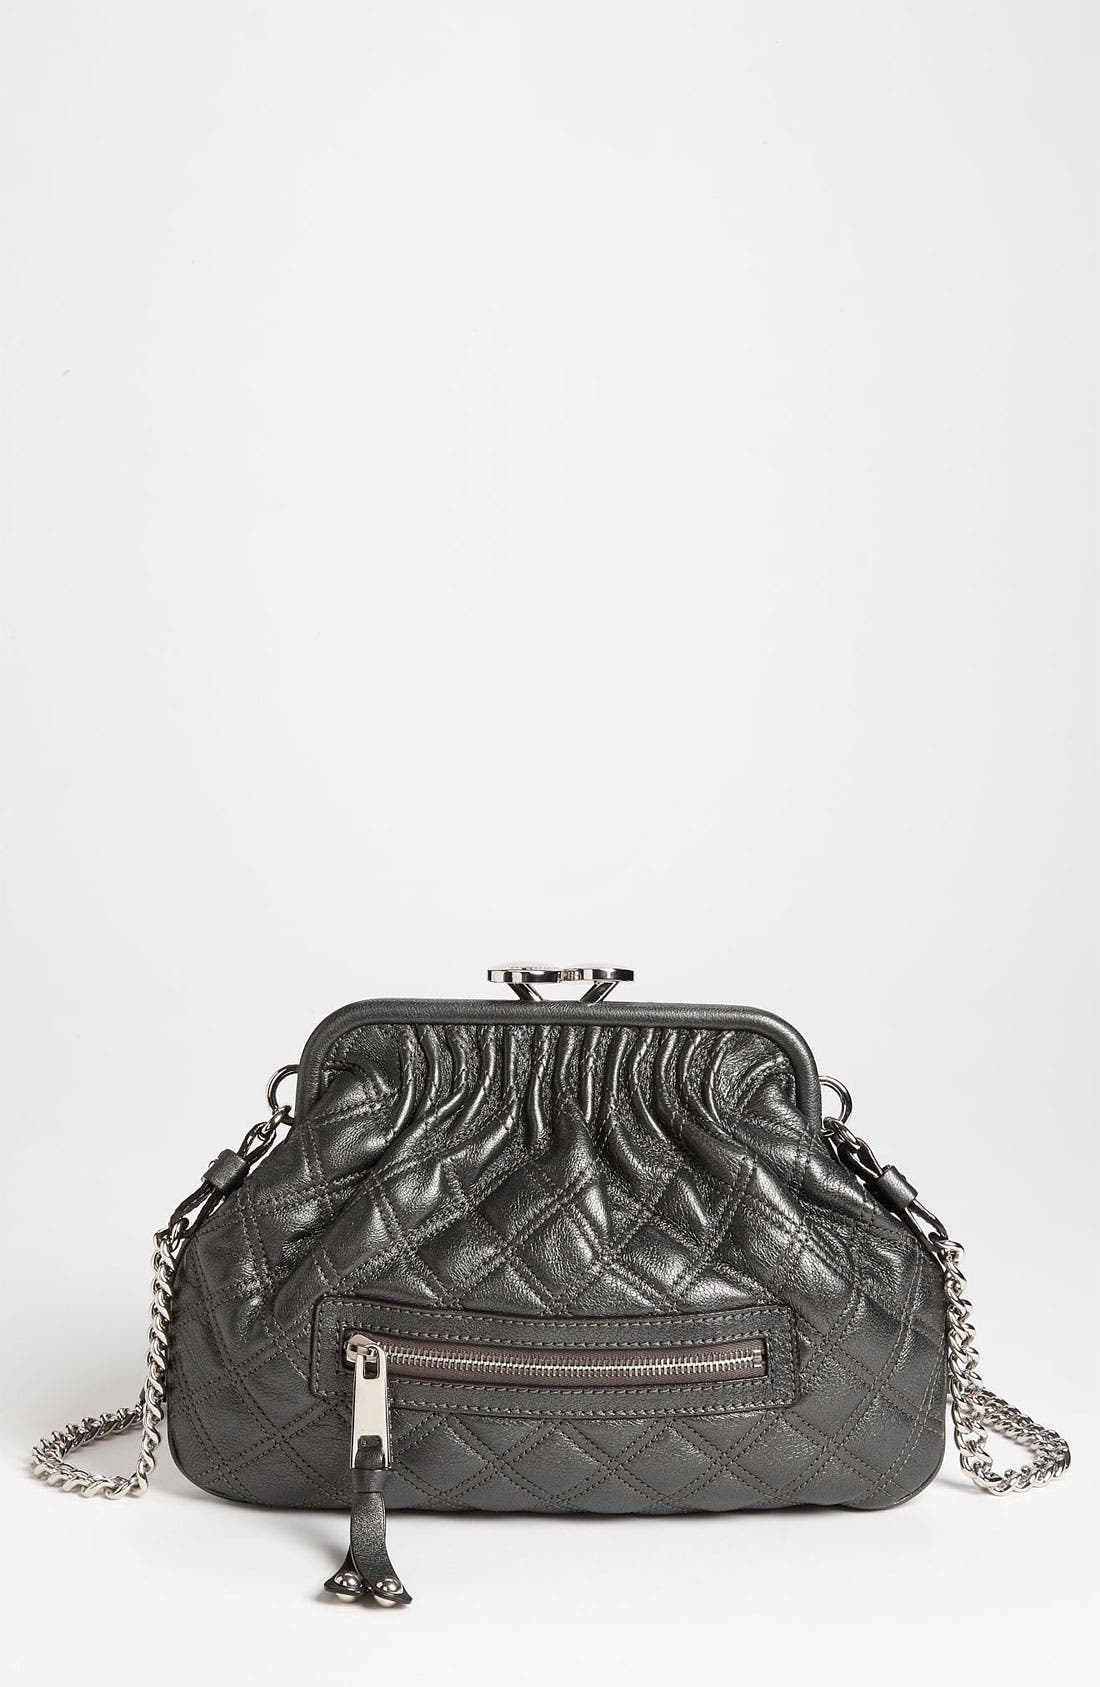 Alternate Image 1 Selected - MARC JACOBS 'Little Stam' Leather Crossbody Bag